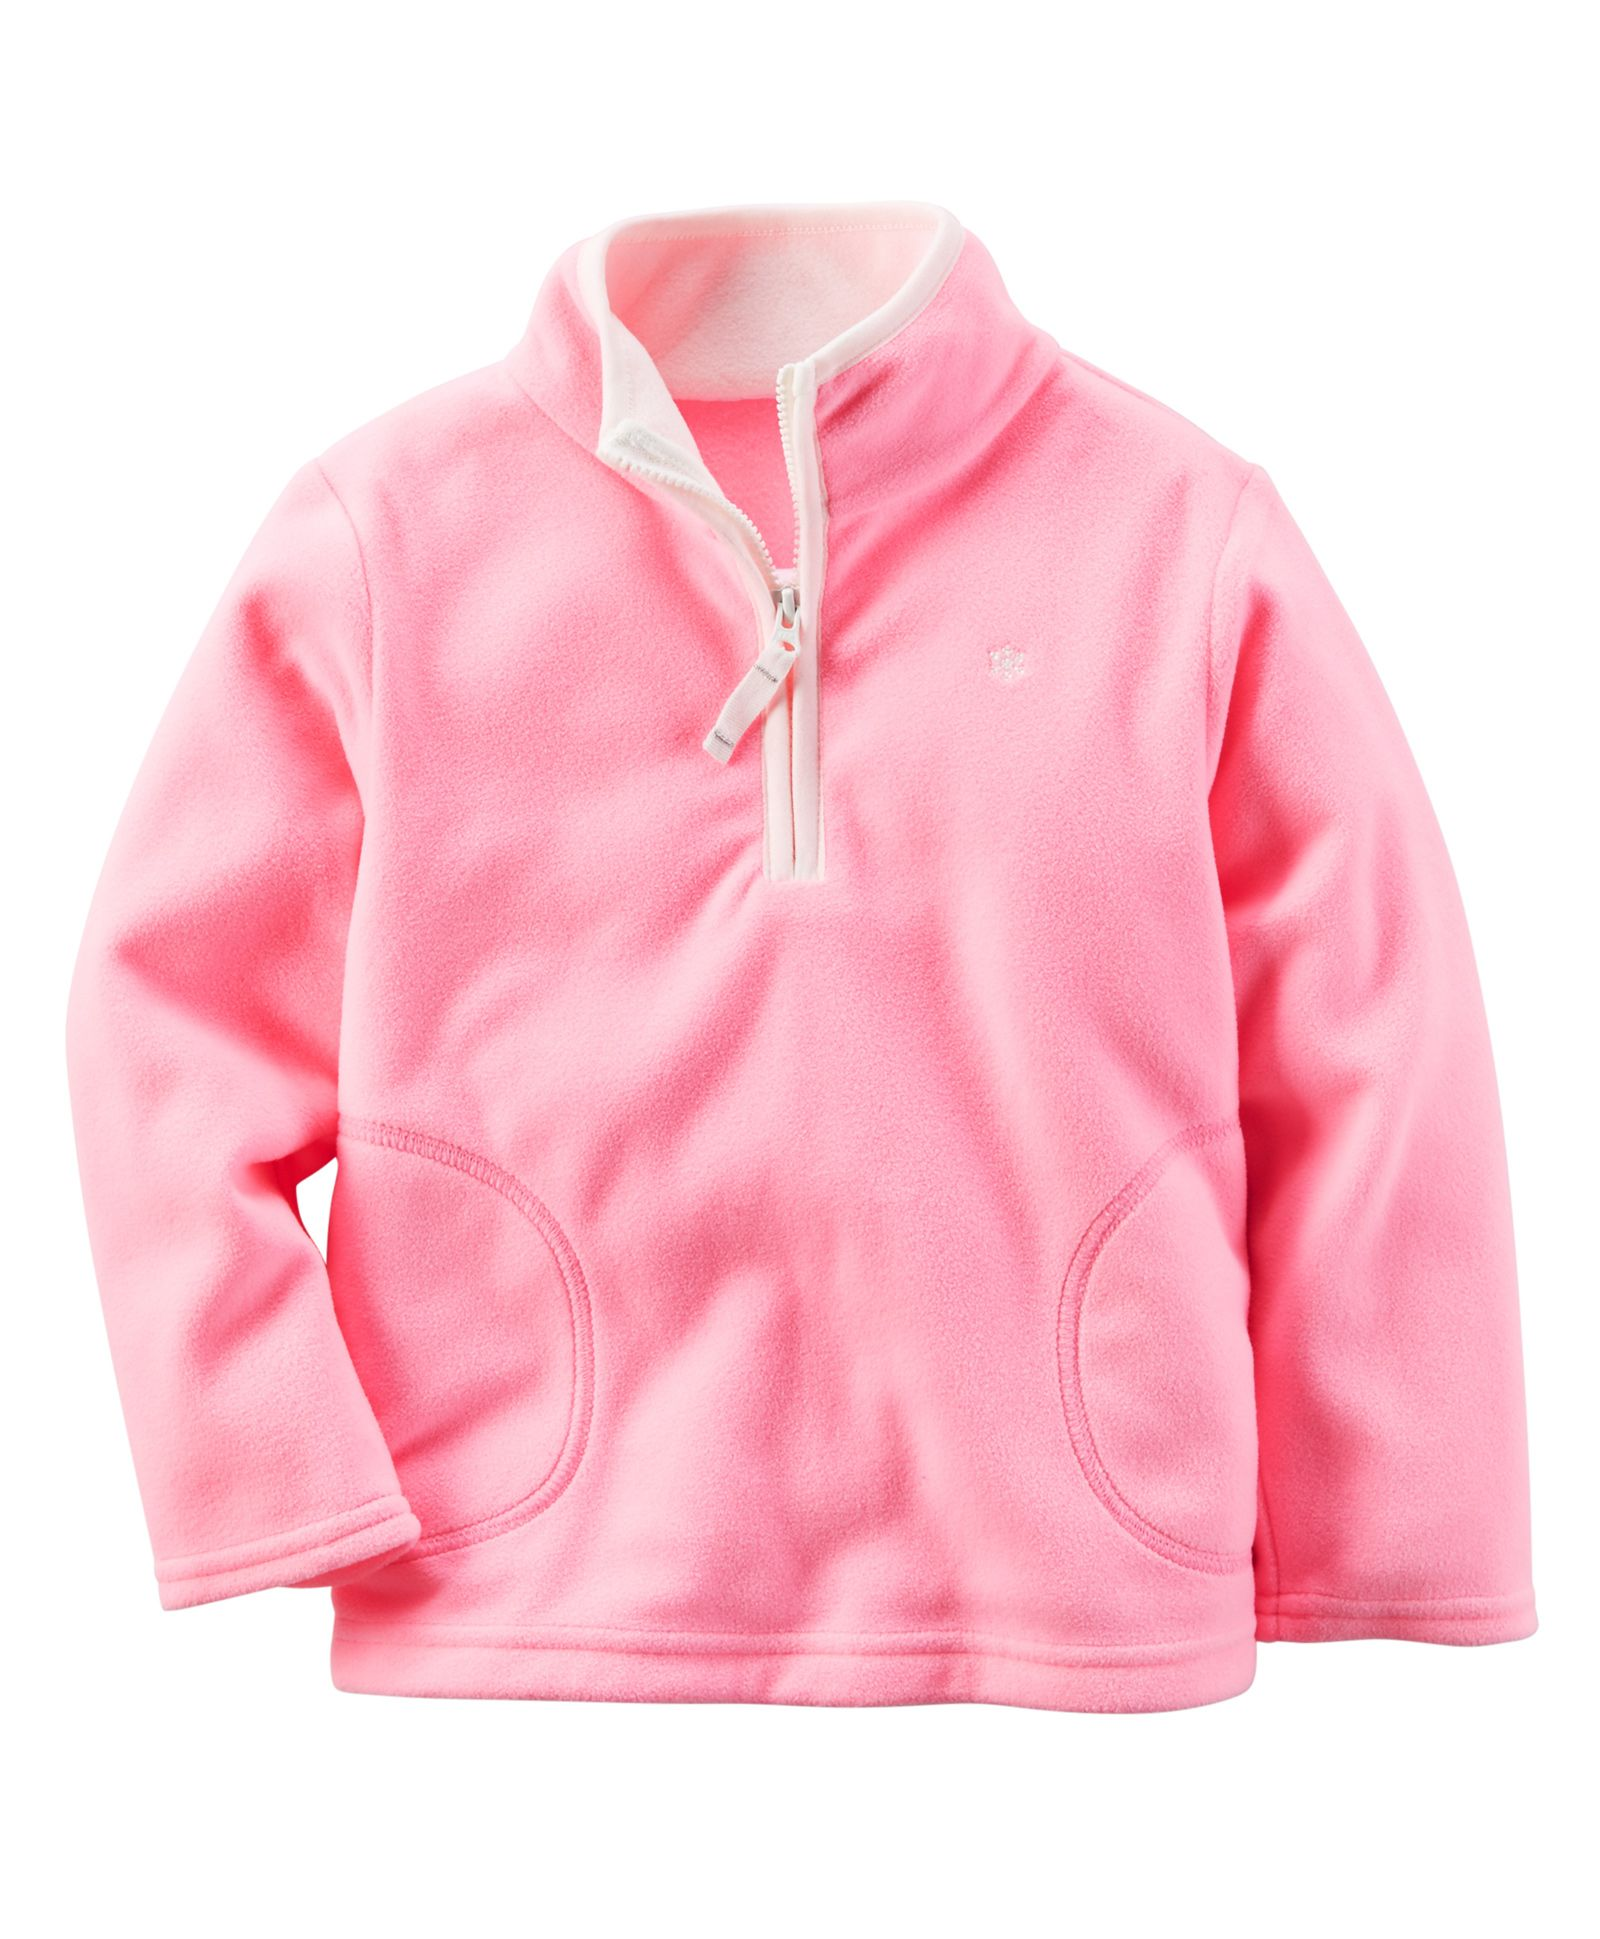 11 MINUTES @ 11 PM : 100% Cashback* on Entire Fashion Range By FirstCry | Carter's Full Sleeves Sweat Jacket - Pink @ Rs.909.30